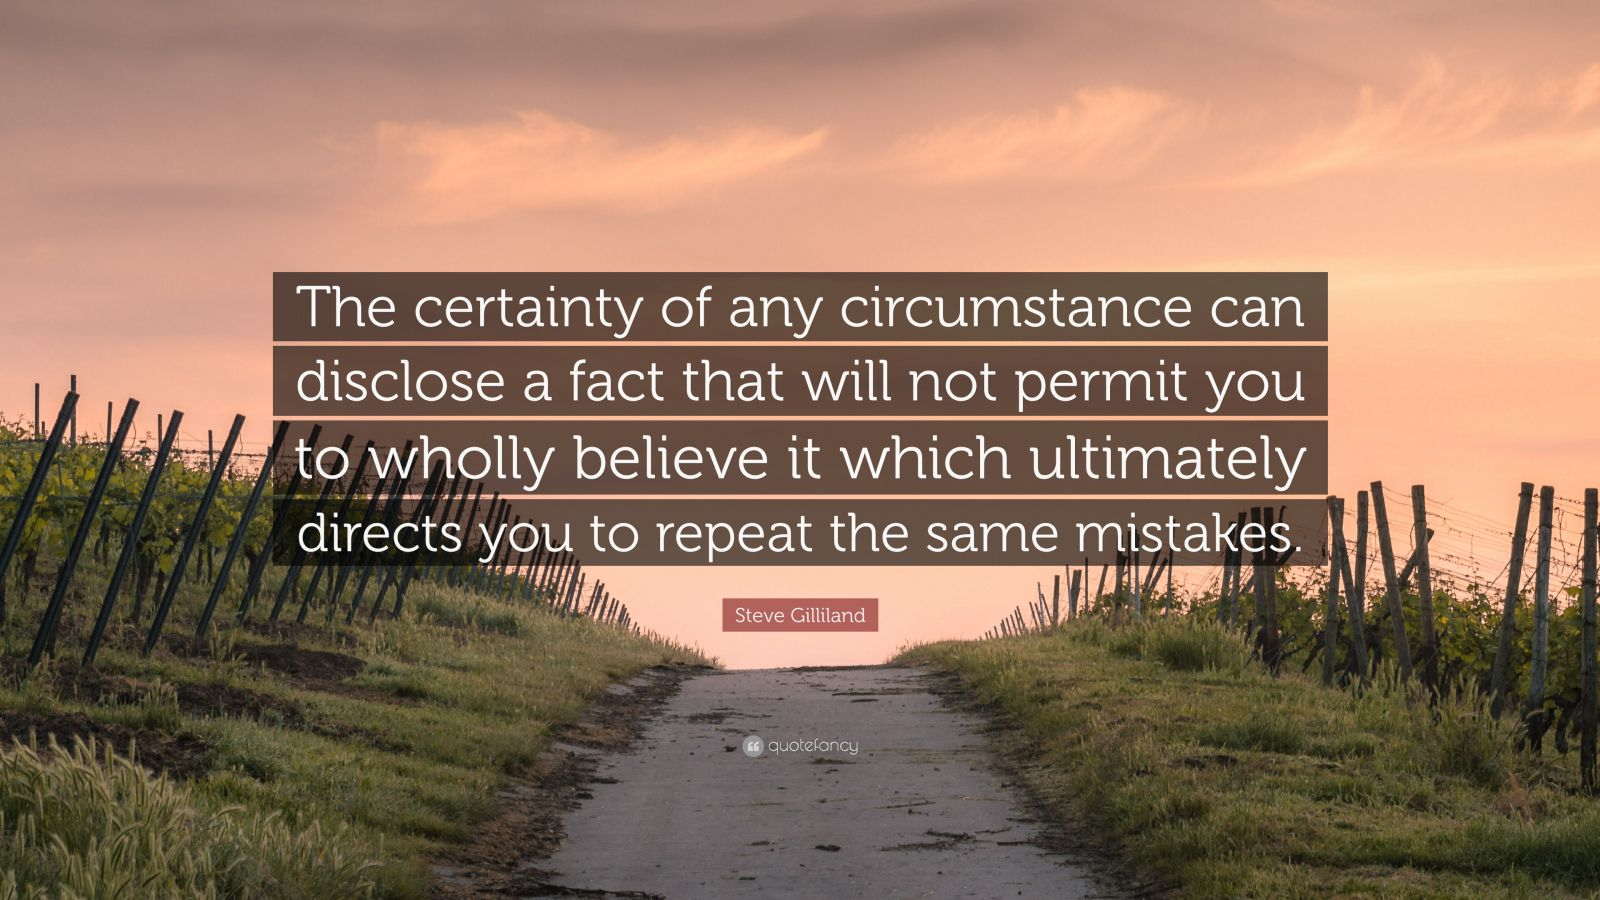 """Steve Gilliland Quote: """"The certainty of any circumstance can disclose a fact that will not permit you to wholly believe it which ultimately directs you to repeat the same mistakes."""""""